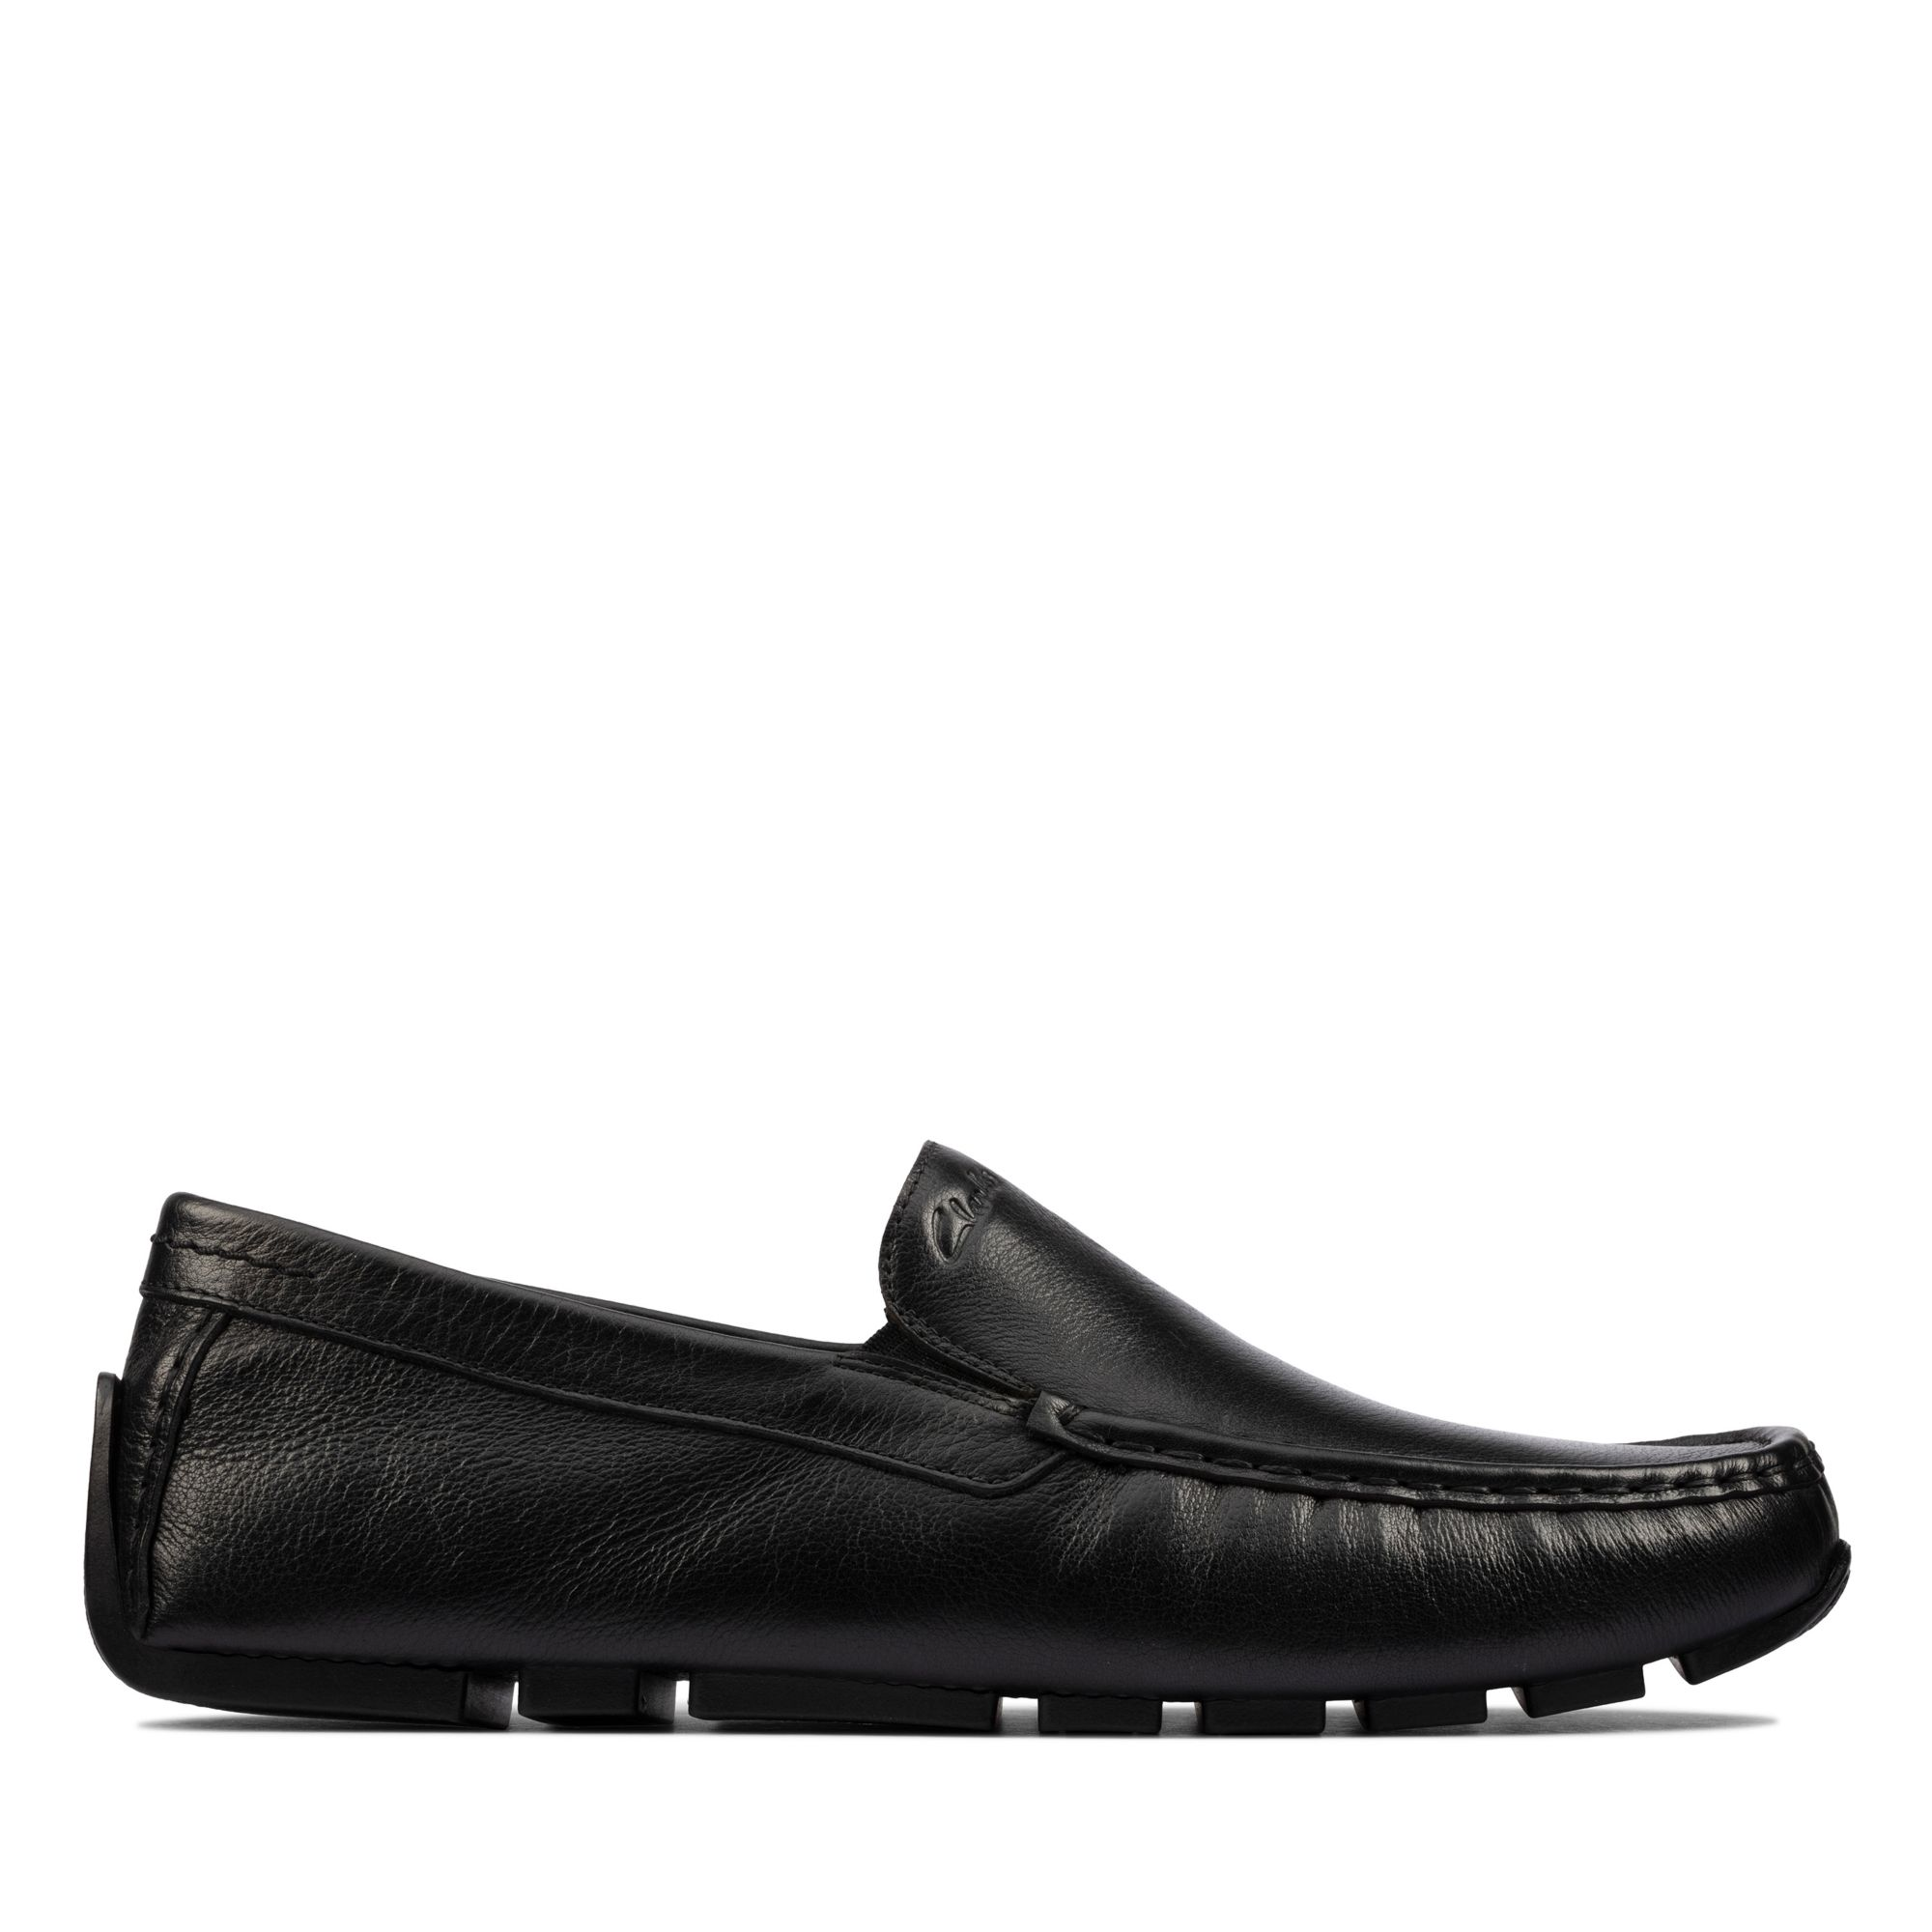 Clarks Oswick Edge Loafers, Black Leather, 42.5